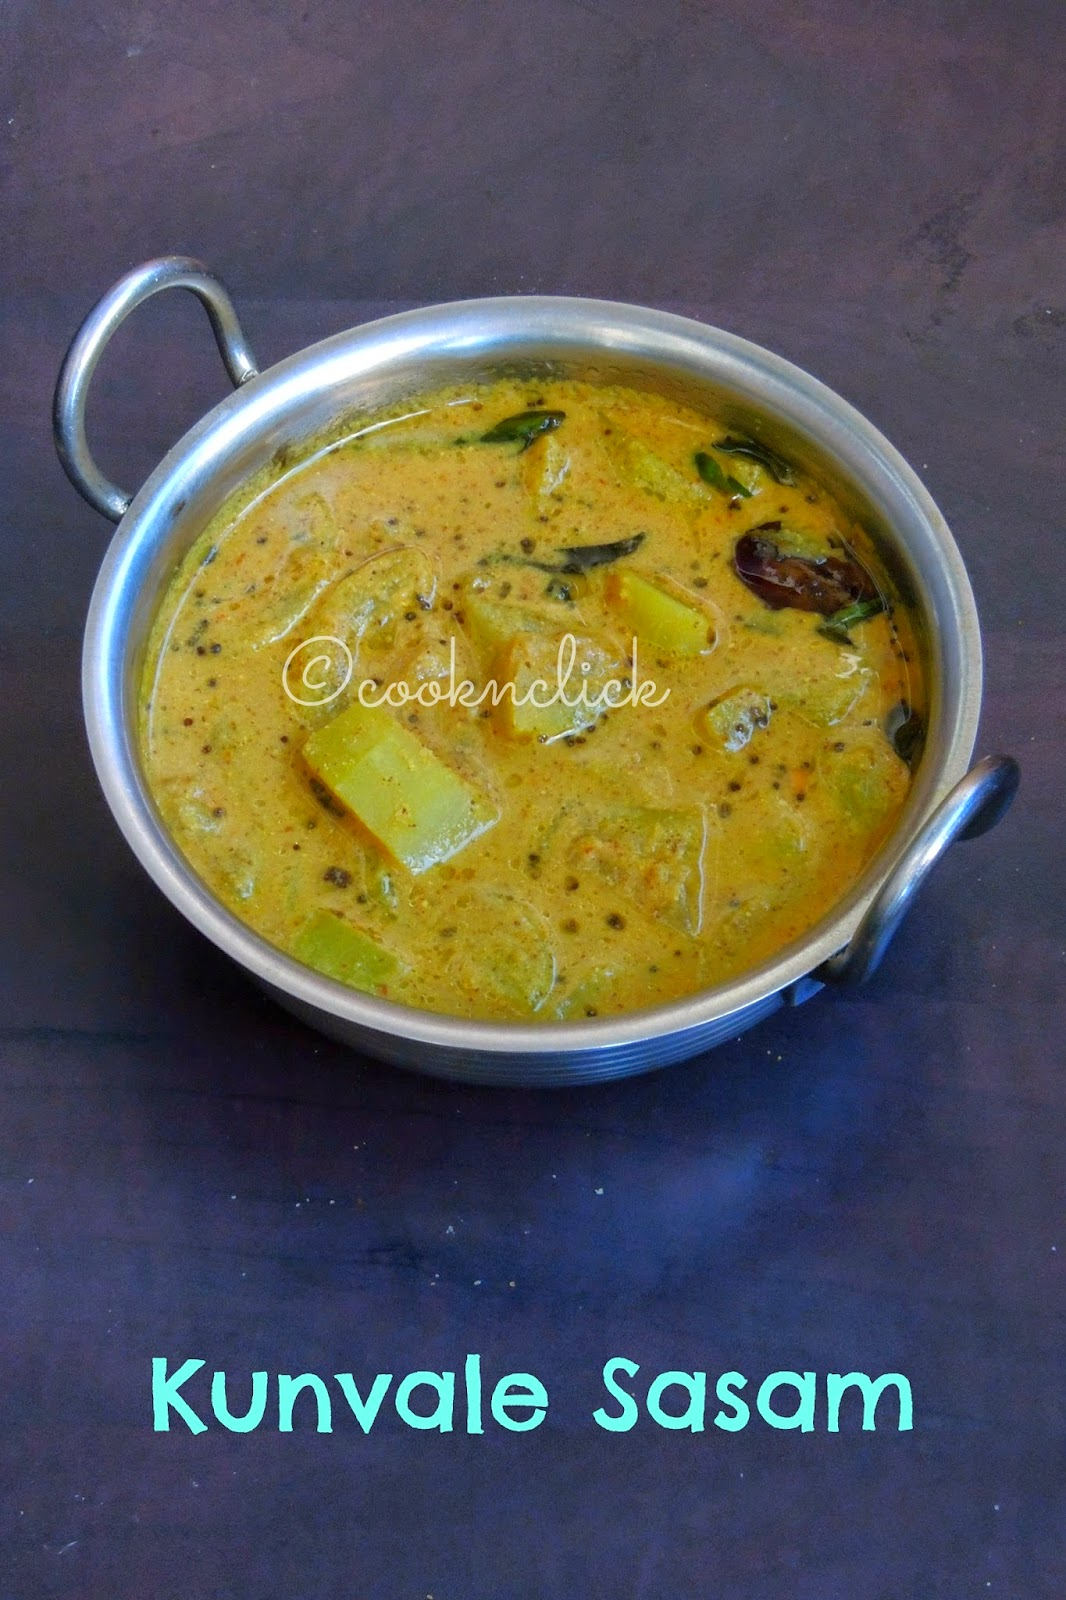 Ashgourd curry without onion and garlic, Kunvale sasam